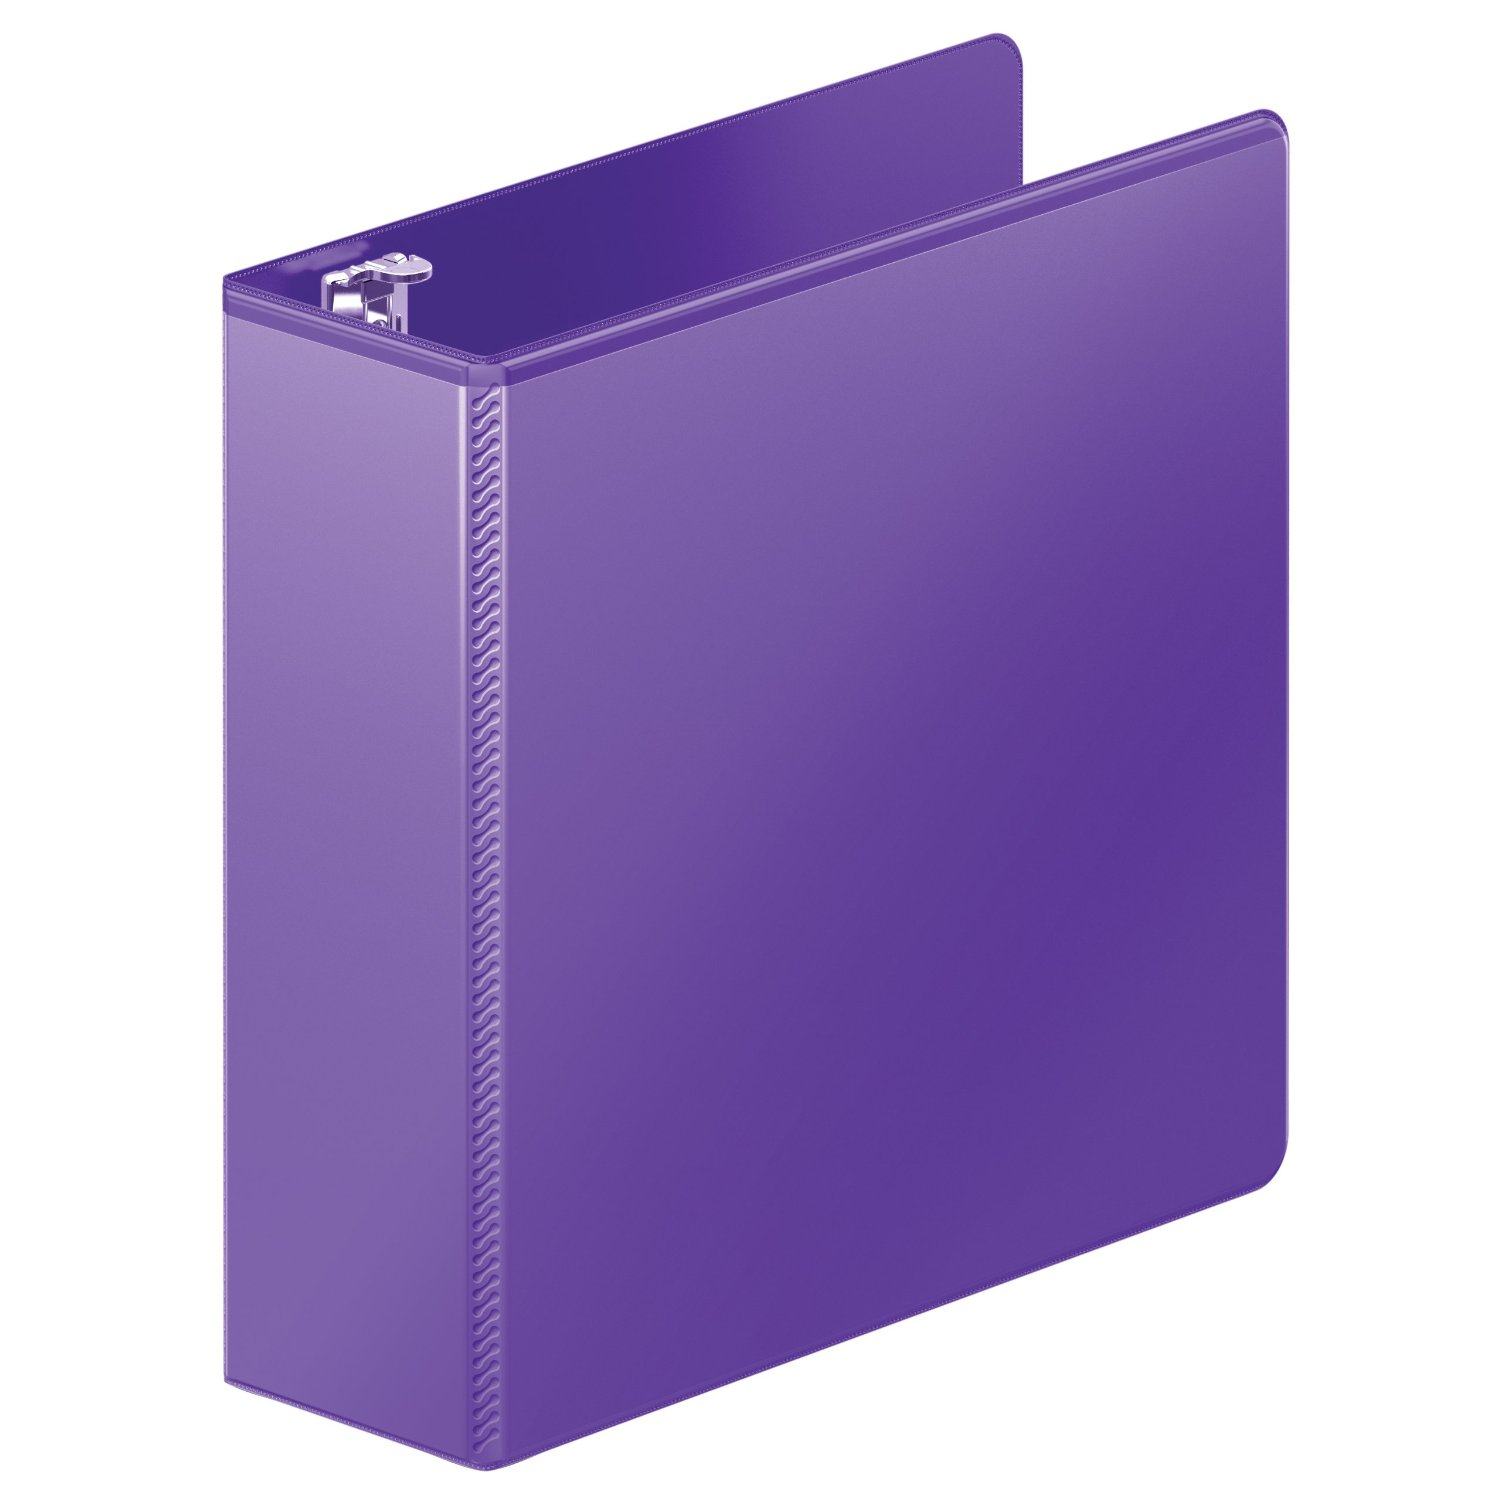 1500x1500 3 Ring Binder Cliparts